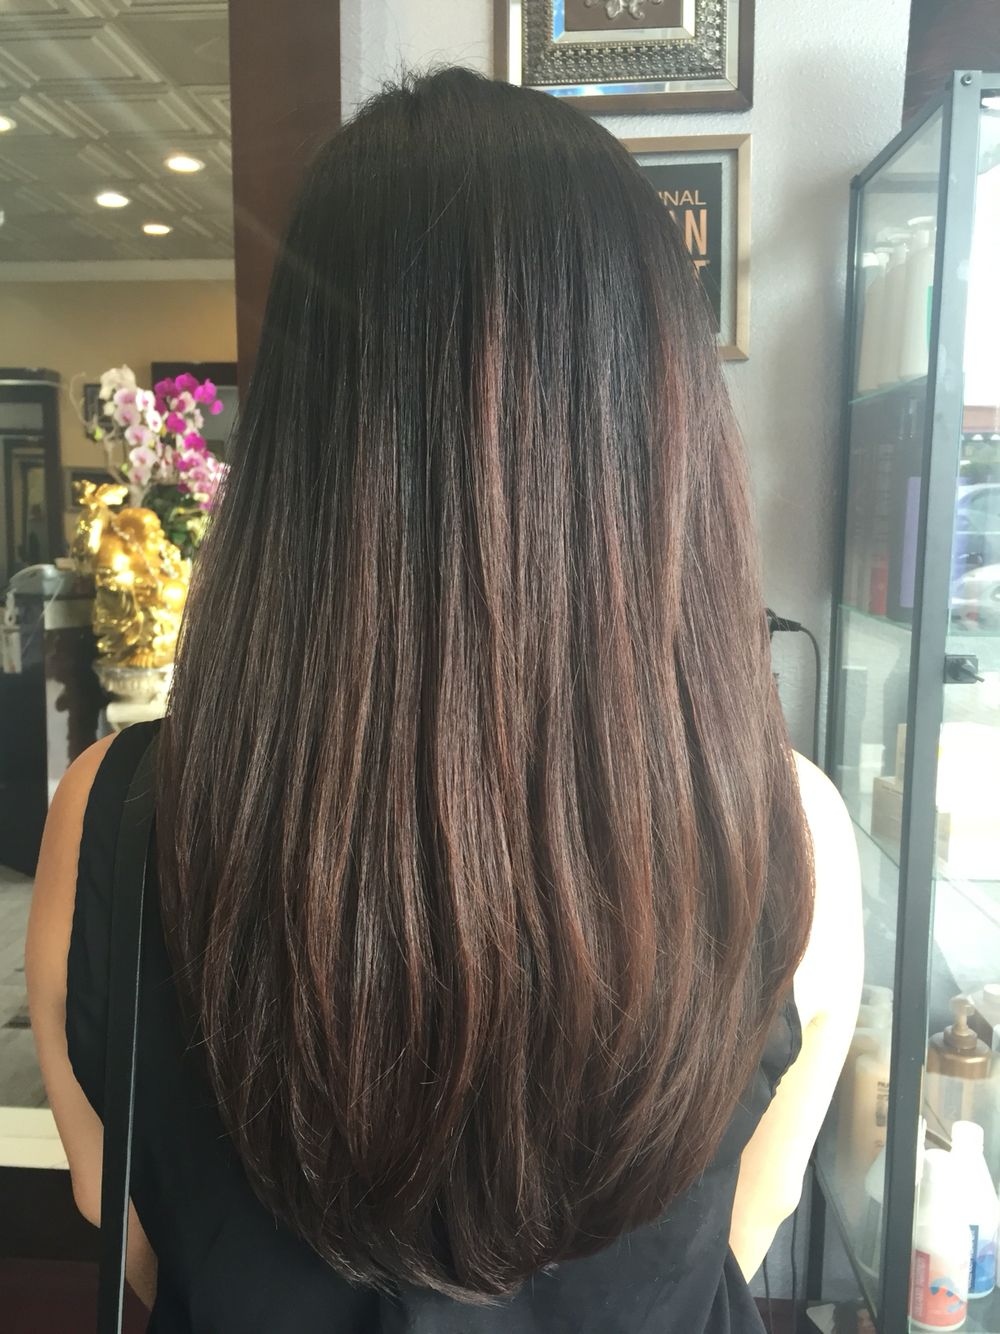 haircut long layers layered hair with u shape my stuff in 2019 hair 1707 | db5e936beda71ab6da67ee232ab9b16e